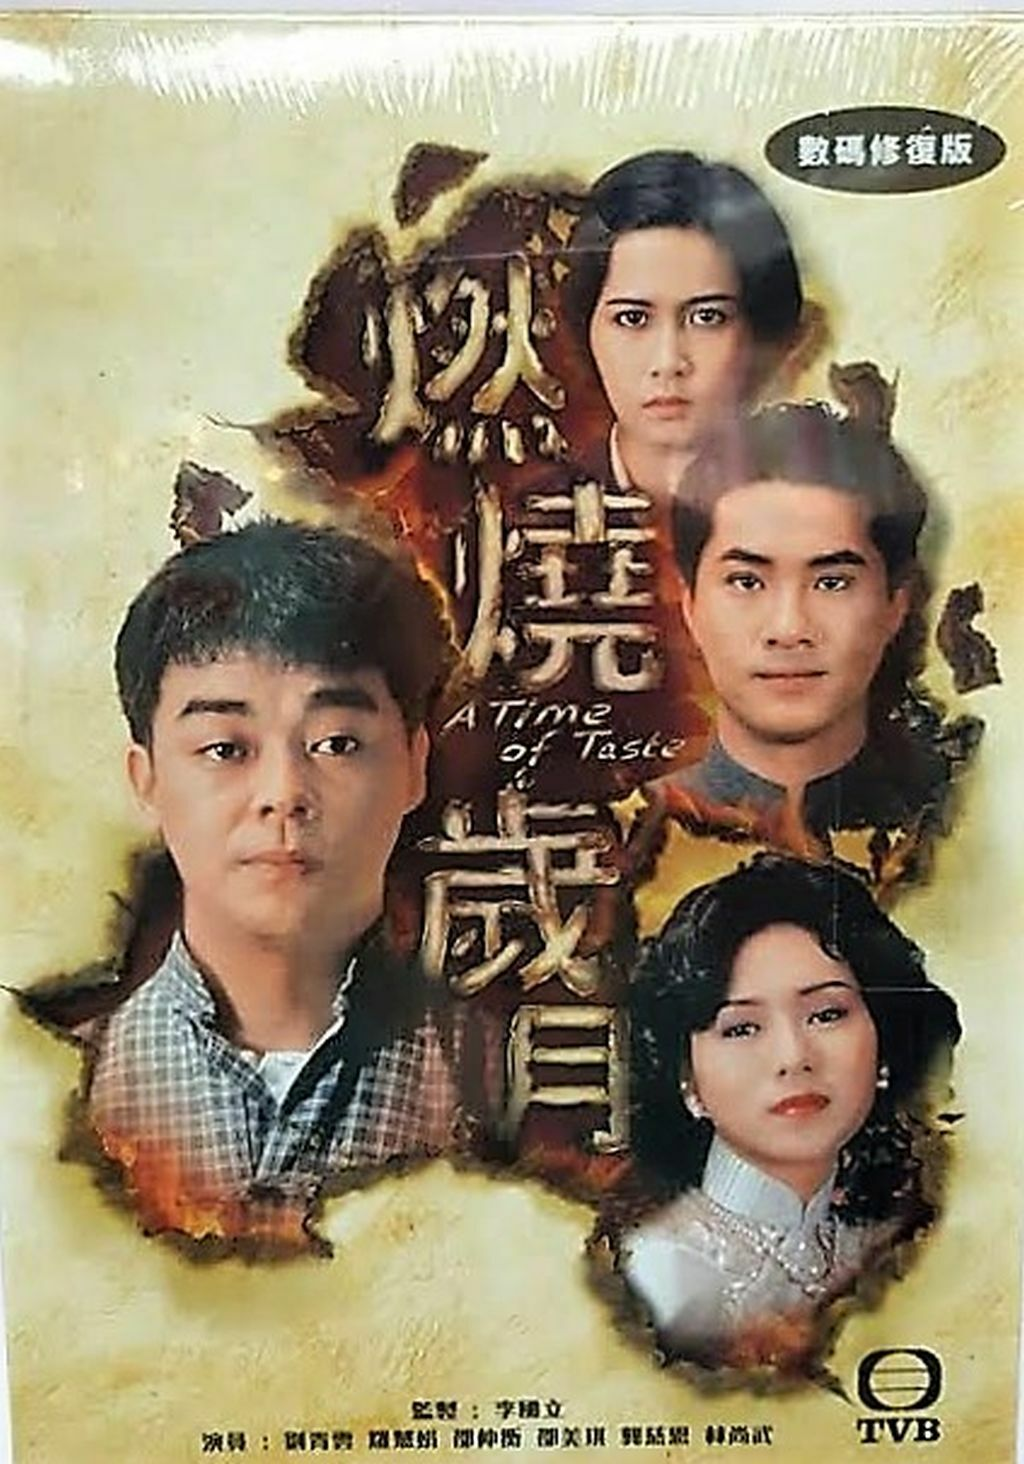 A TIME OF TASTE 燃燒歲月 1990  TVB DVD (1-20 end) NON ENGLISH SUBTITLES  ALL REGION